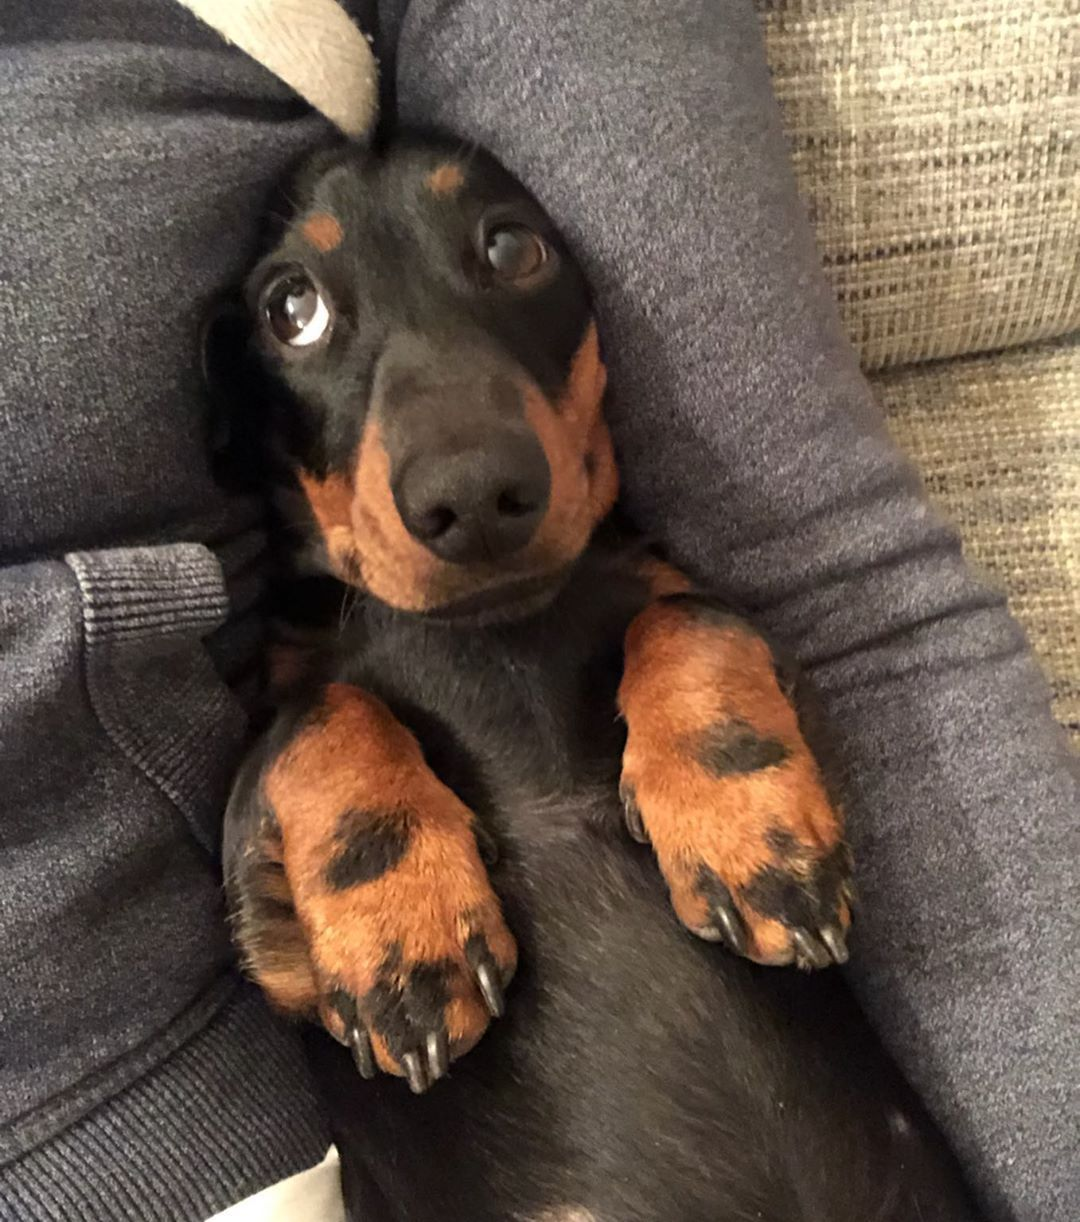 Pin By Virginia Lewis On Weenie Dog In 2020 Puppies Doxie